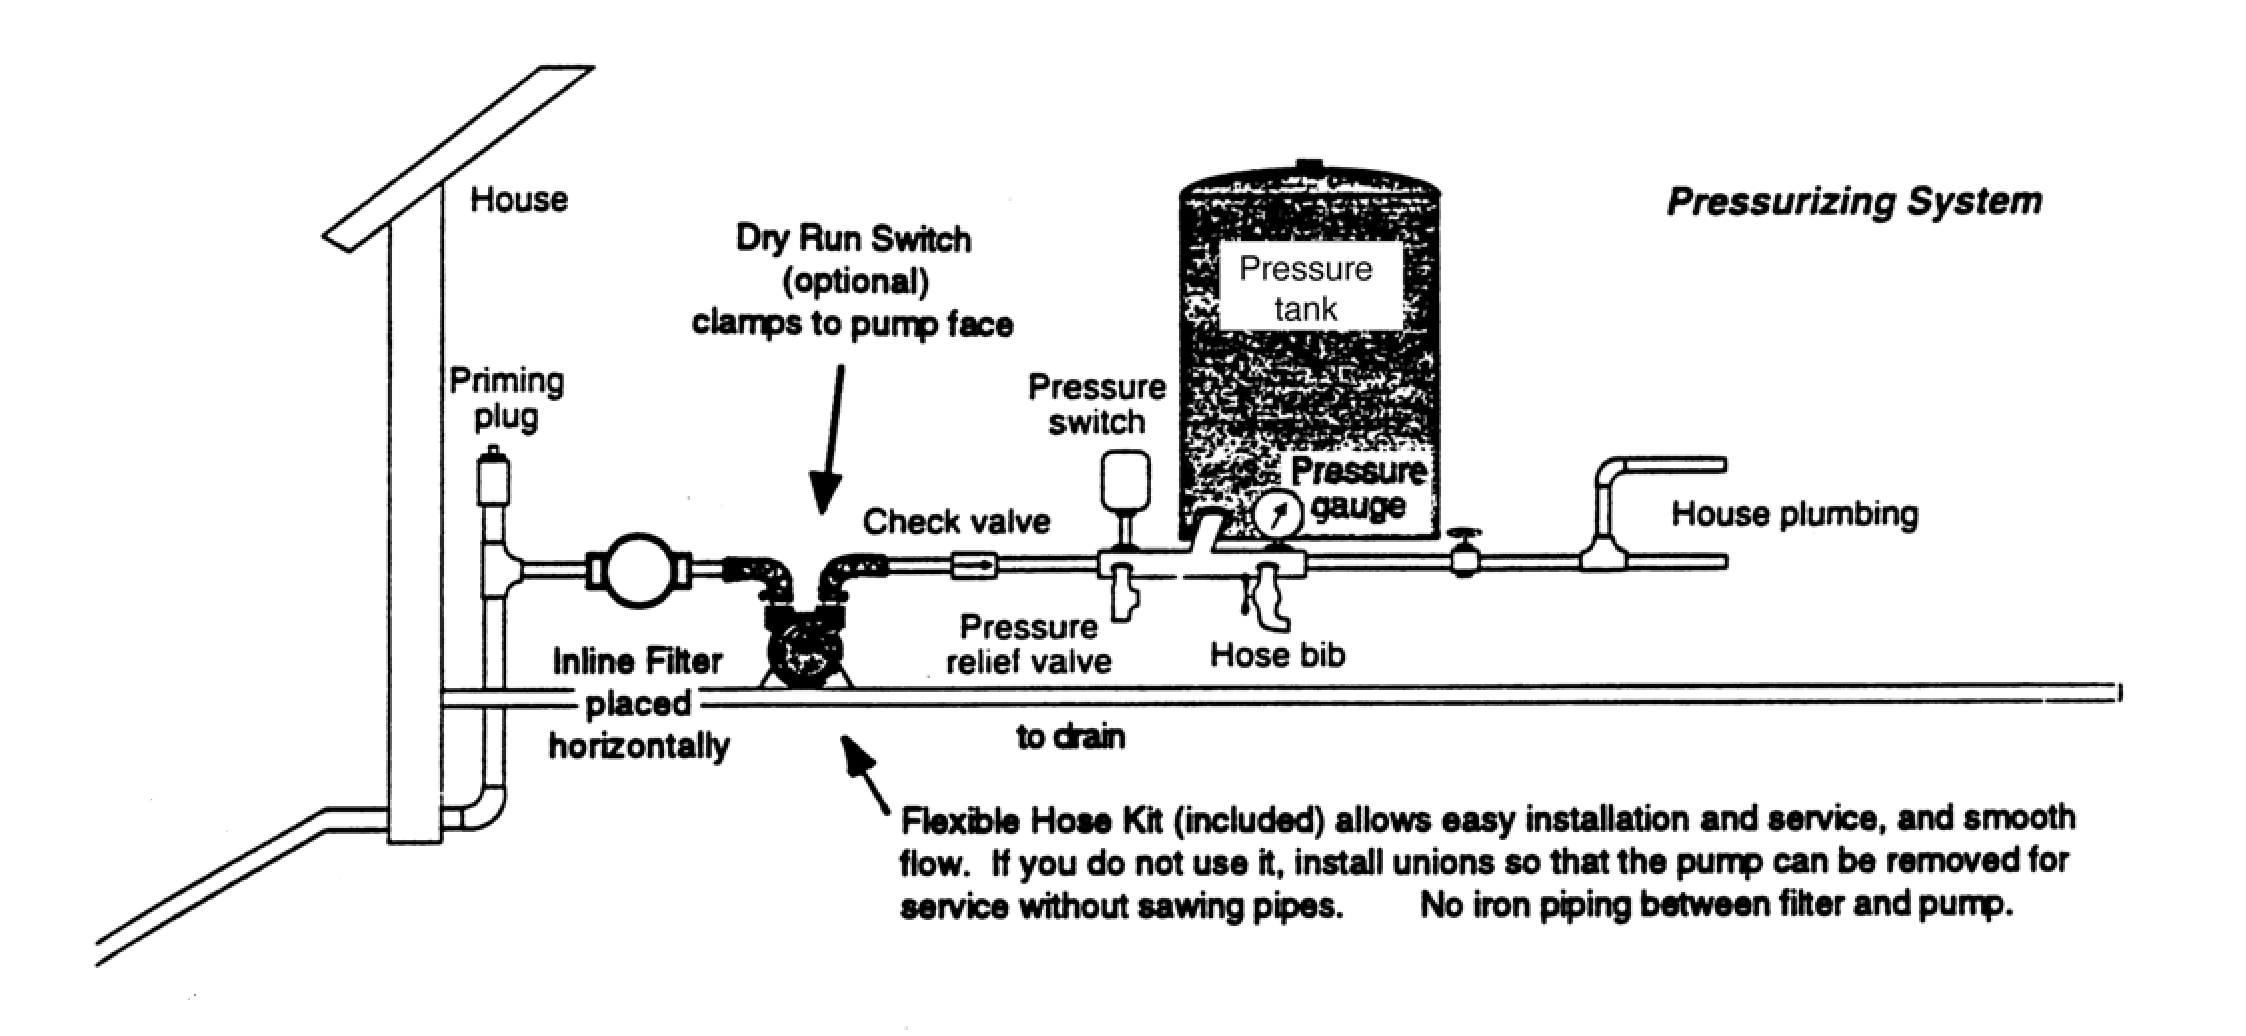 pool booster pump plumbing diagram pool get free image water pressure tank wiring diagram water pressure [ 2246 x 1036 Pixel ]